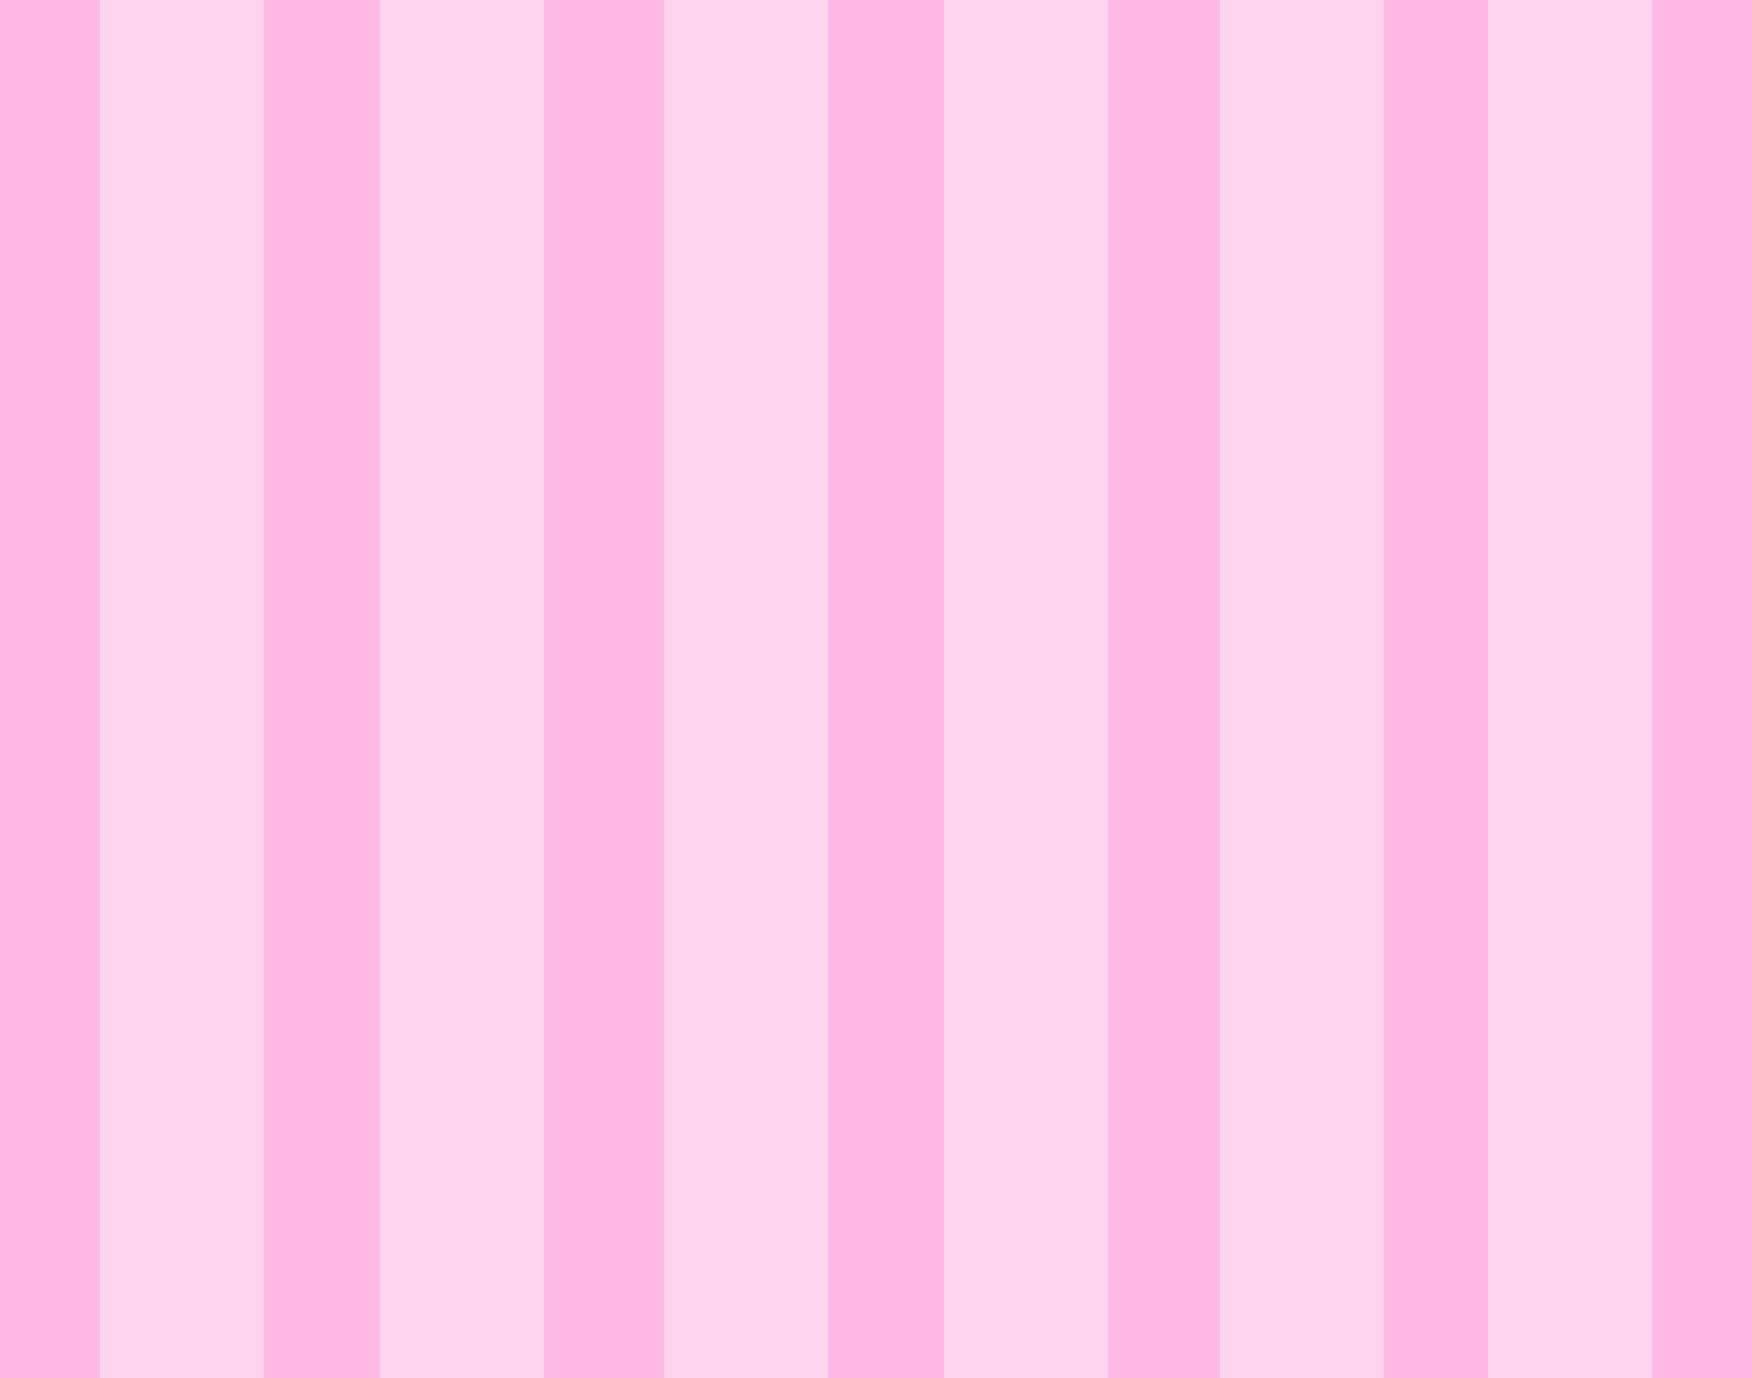 pink-stripes-backgrounds-for-powerpoint.jpg 1,752×1,378 ...